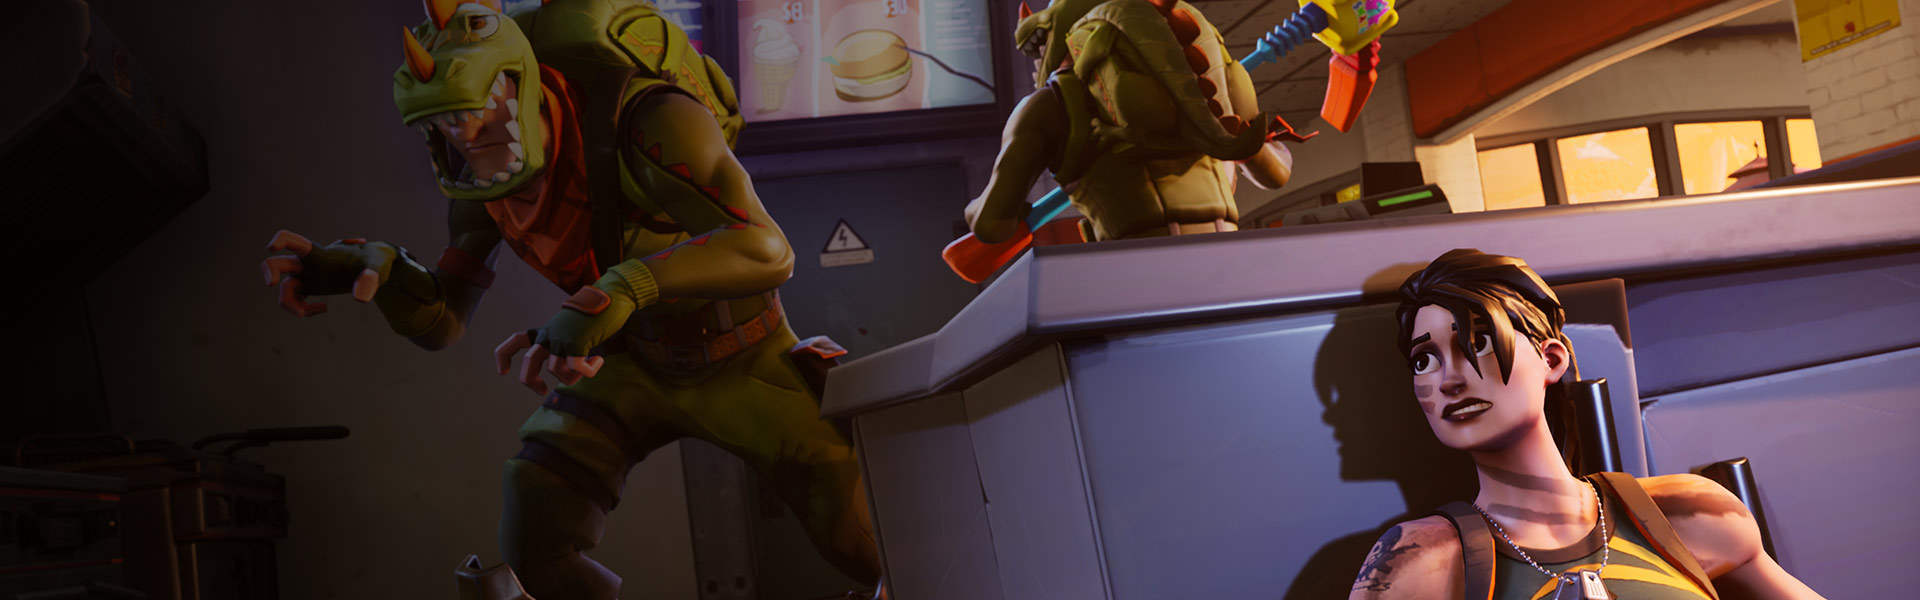 A female character hides behind a counter while 2 characters in dinosaur costumes look for her